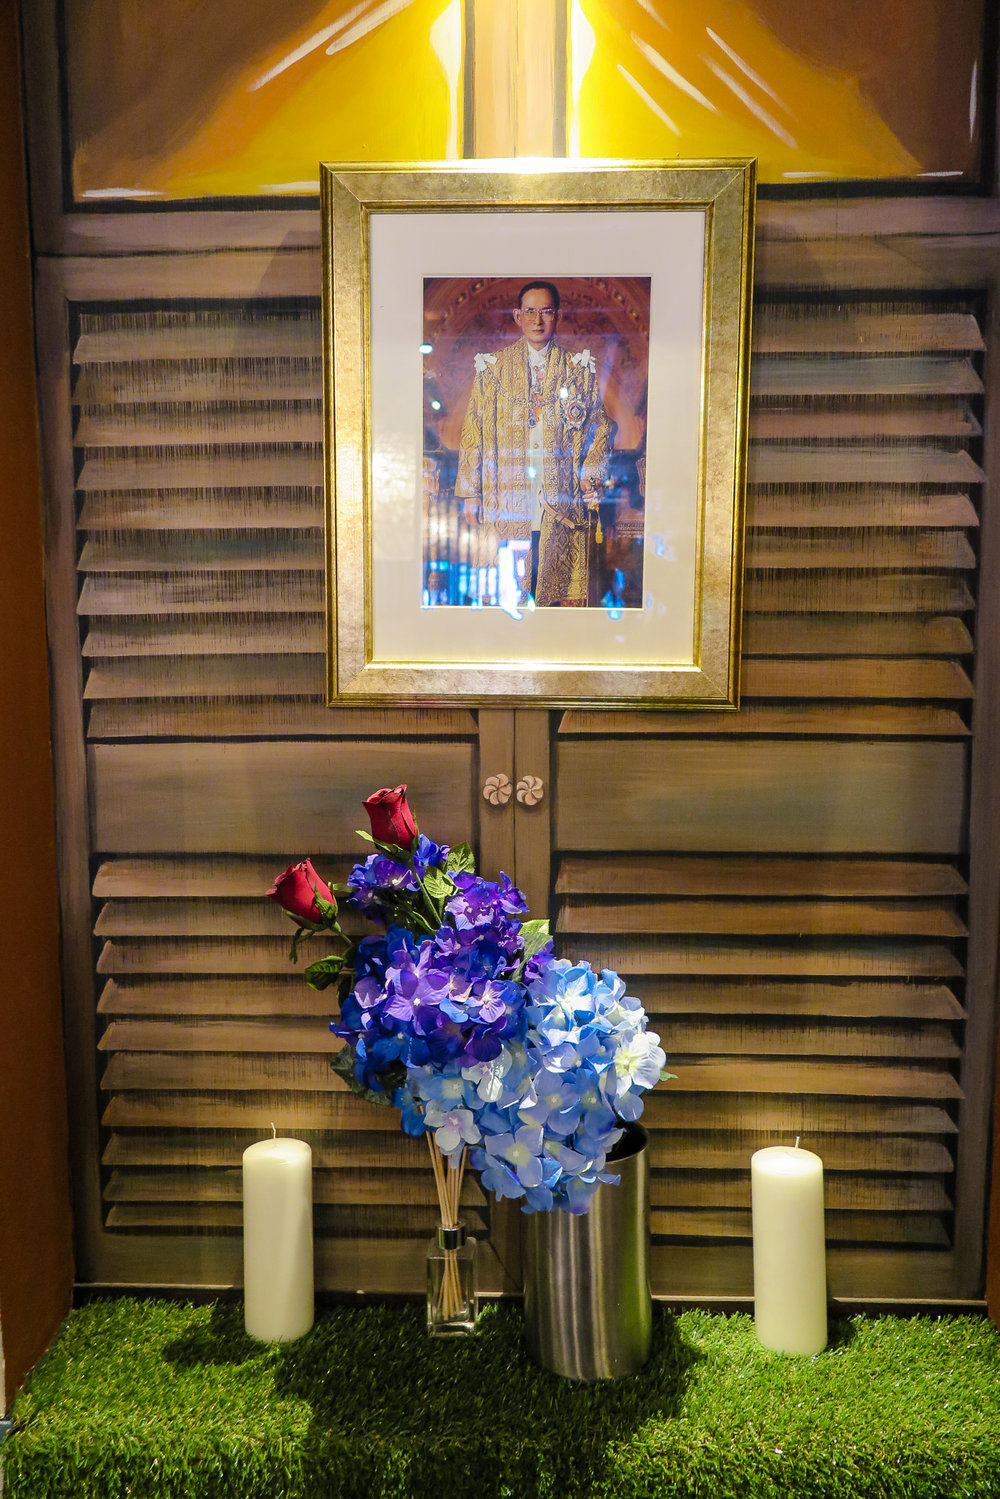 A photograph of the late Thai King Bhumibol Adulyadej. There's also a photo of the current king on the other side of the wall.